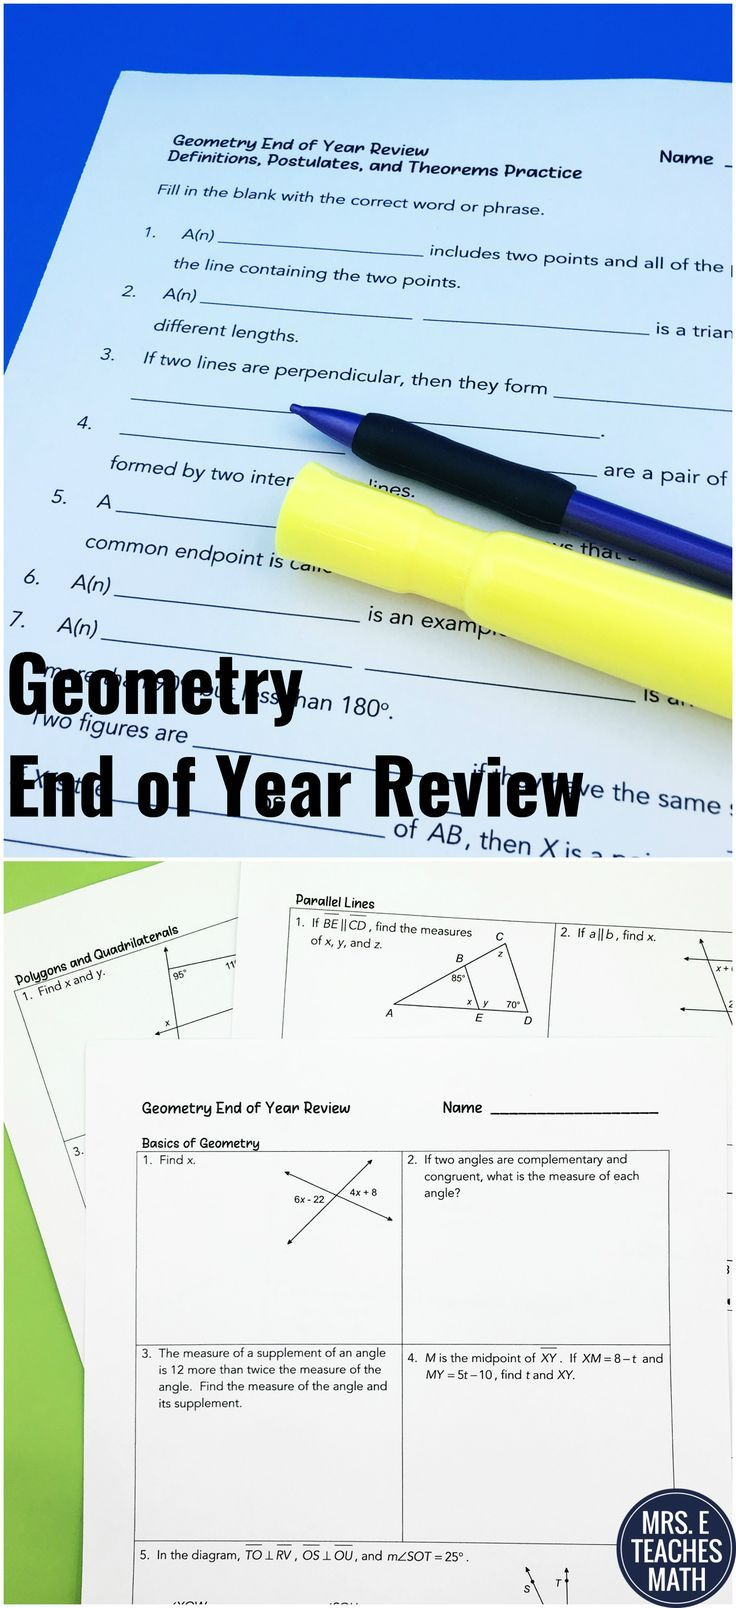 Geometry End Of Year Review Huge Packet Of Review Problems For State Testing Or End Of Year R High School Math Lesson Plans Teaching Math Geometry Vocabulary